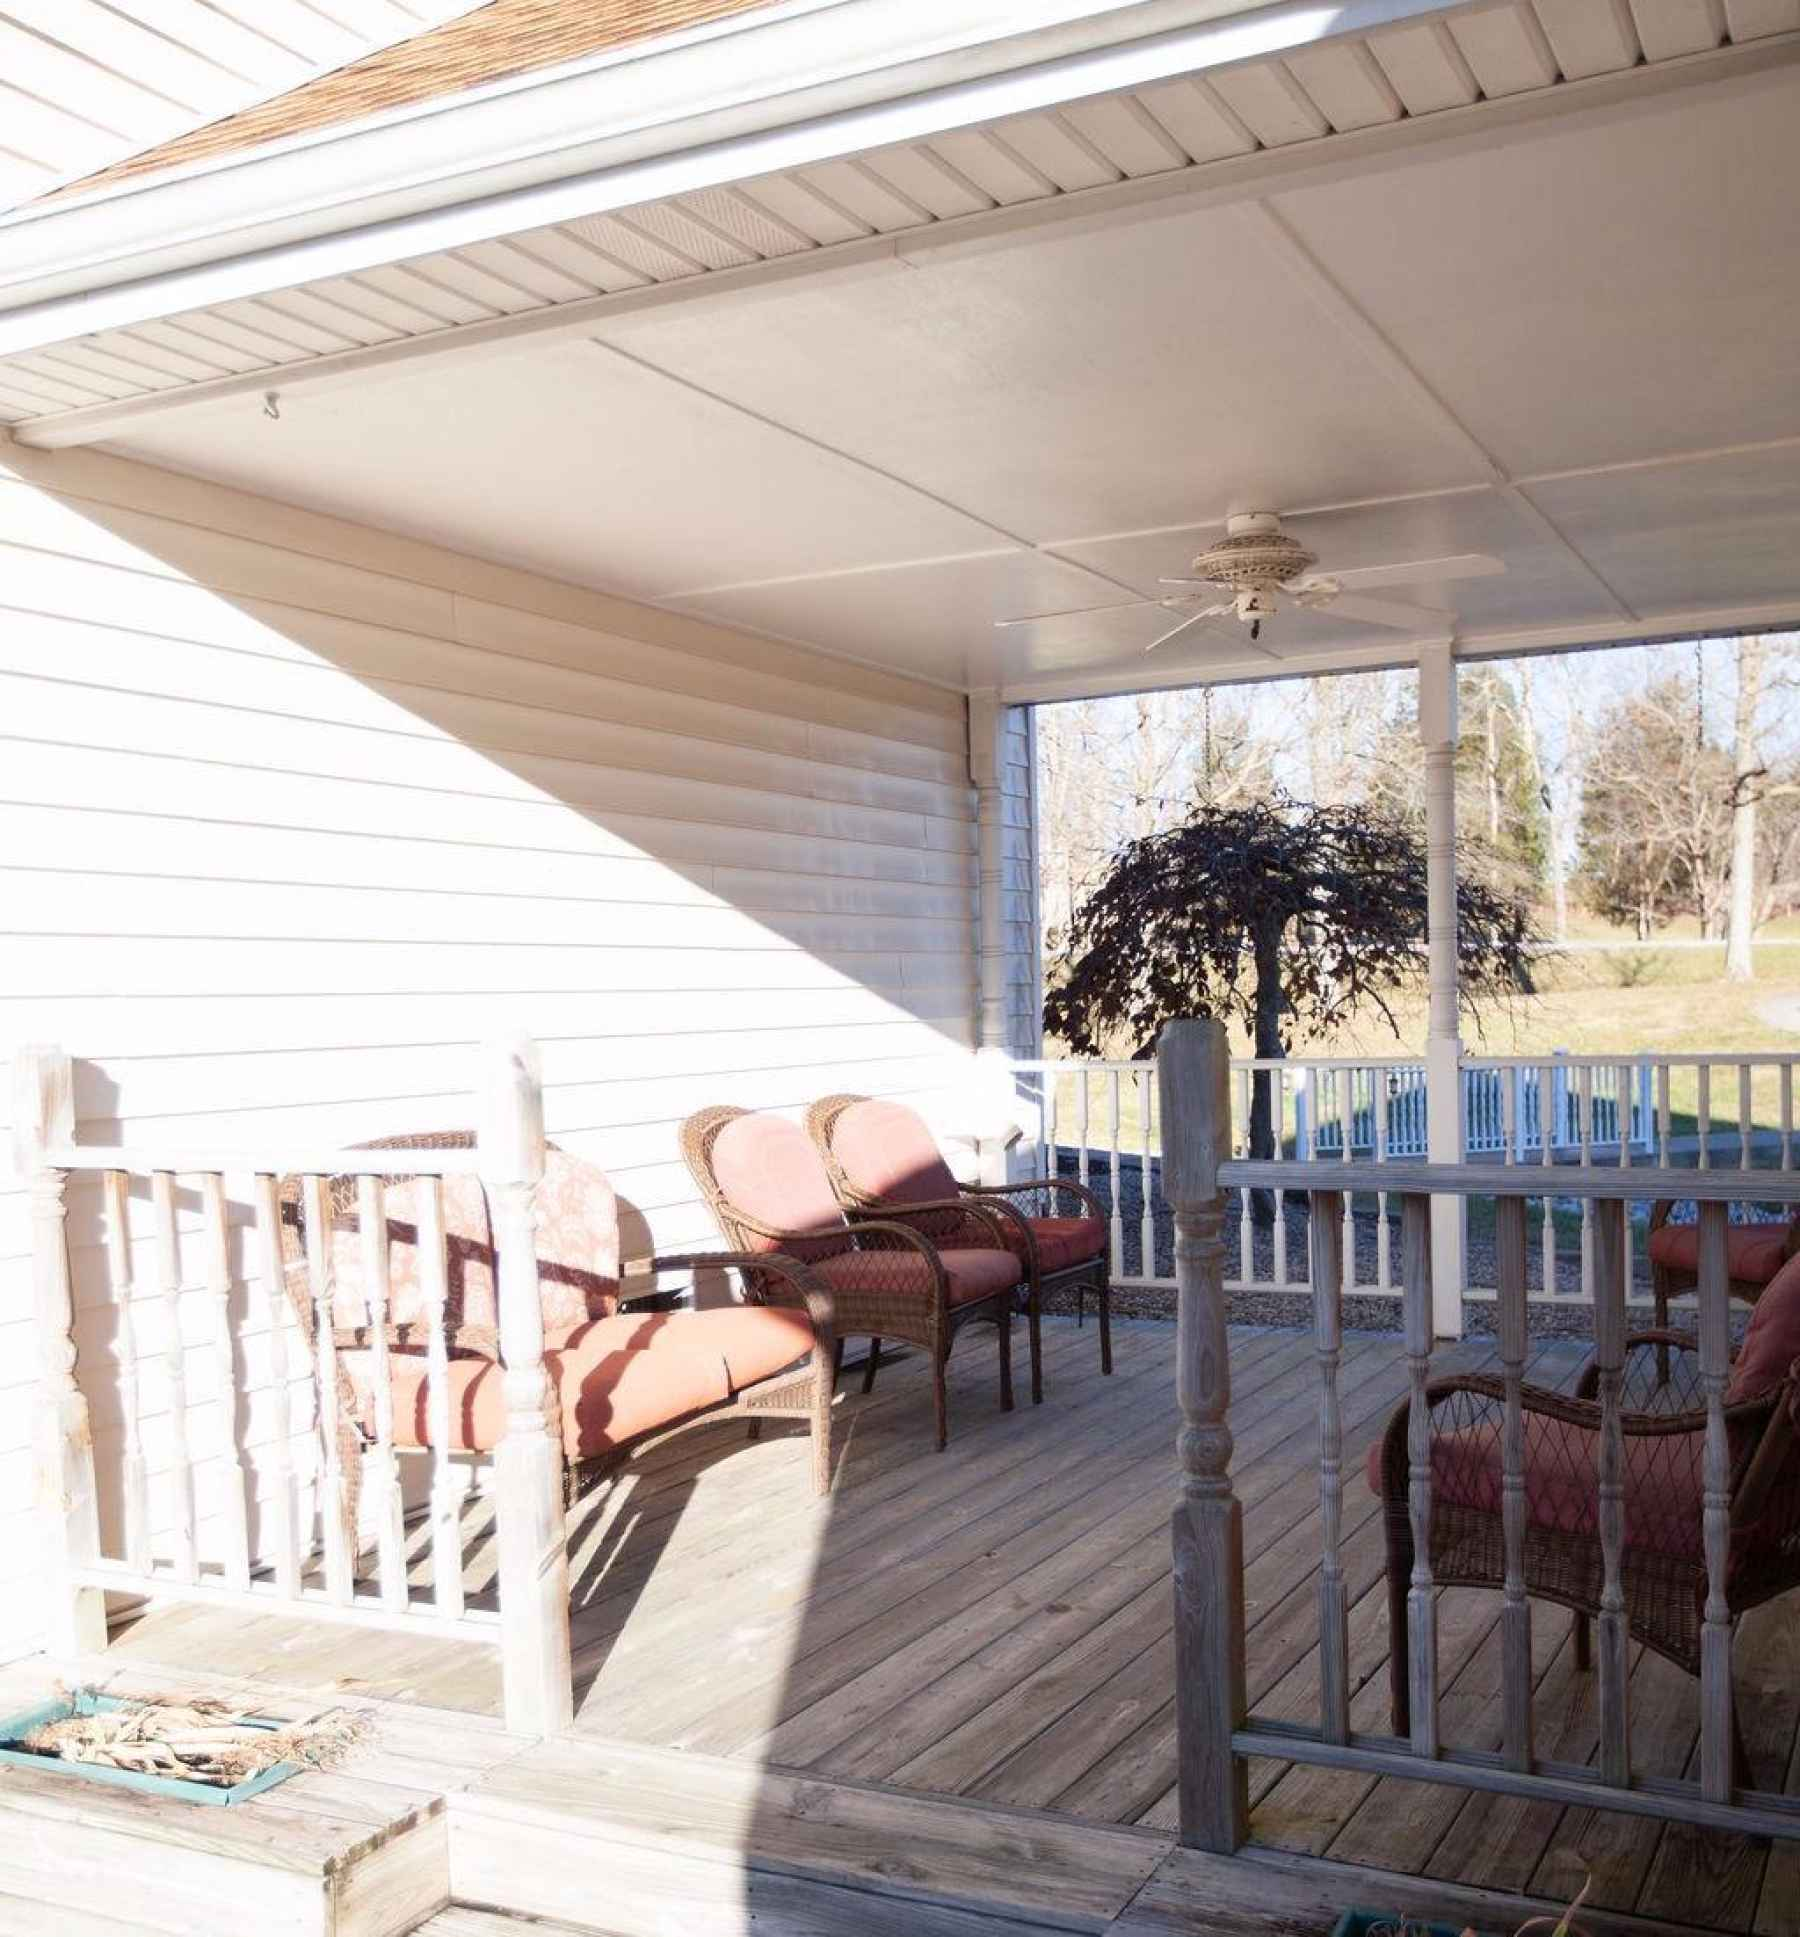 This breezeway connecting the home to the garage has a wonderful sitting area with a ceiling fan. Just another unique feature adding to the charm of this beautiful country home!